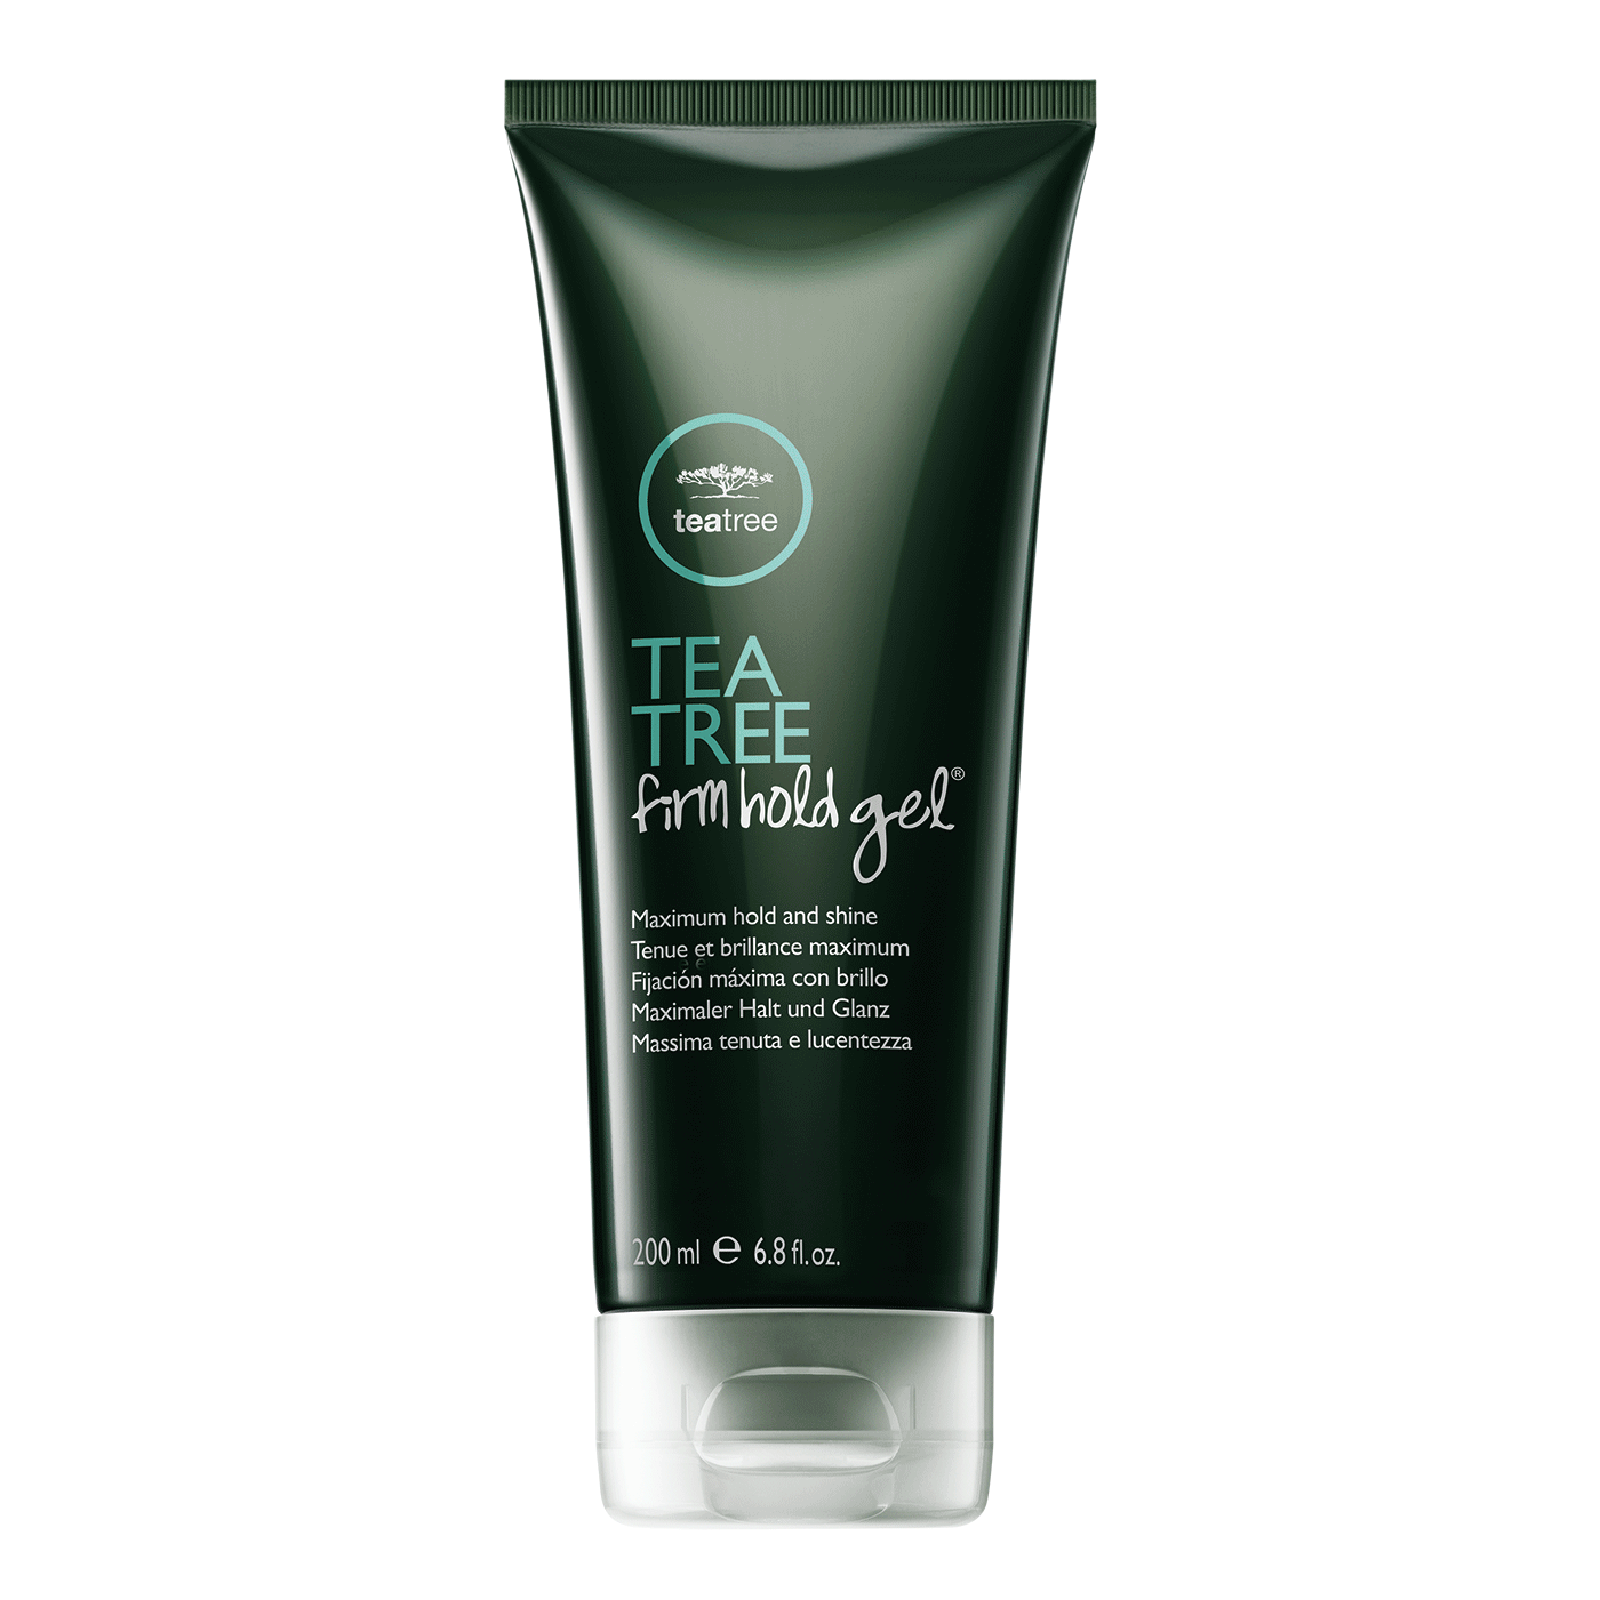 Tea Tree - Firm Hold Gel